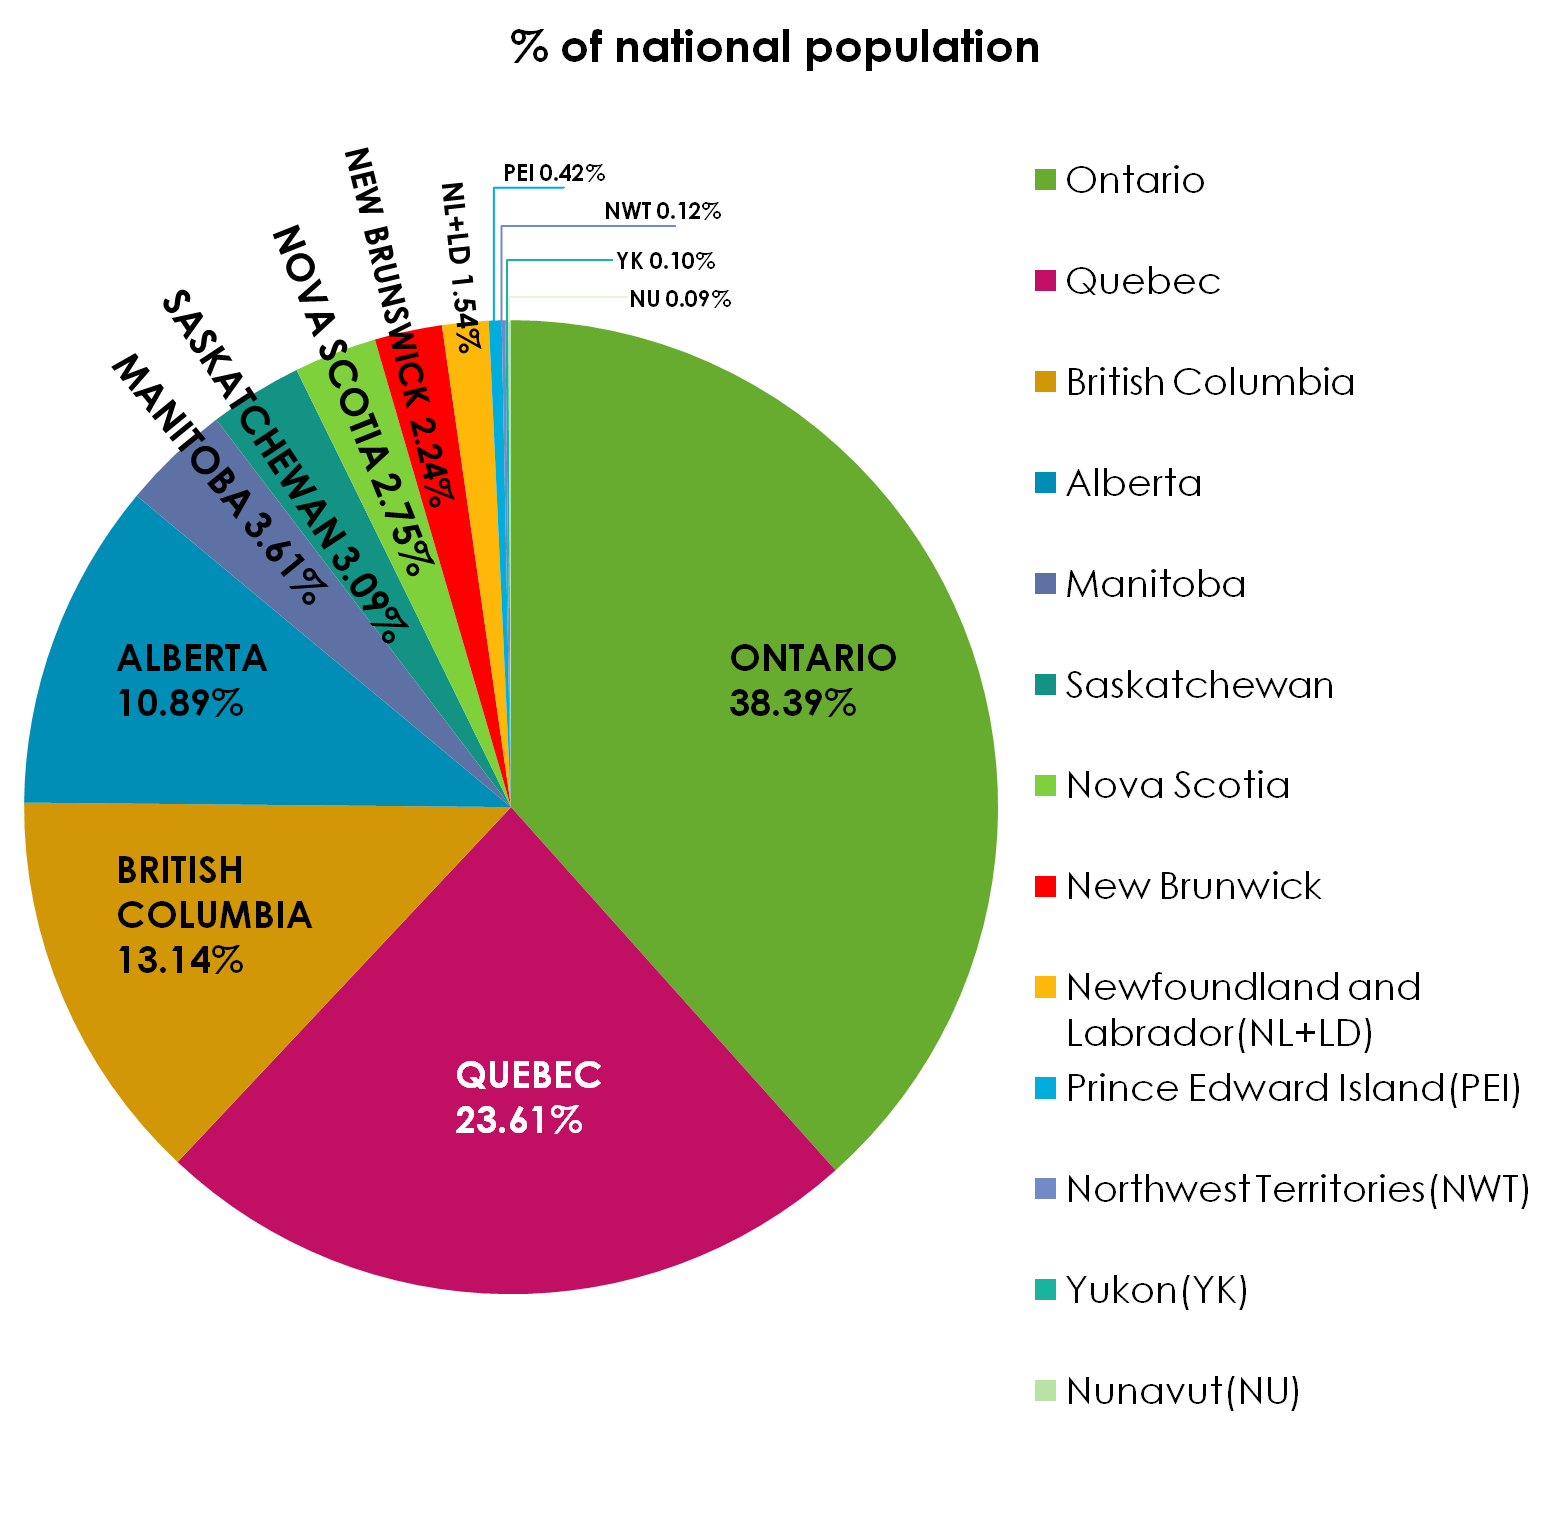 Pie Chart Is Another Way To Get Graphic Information J250